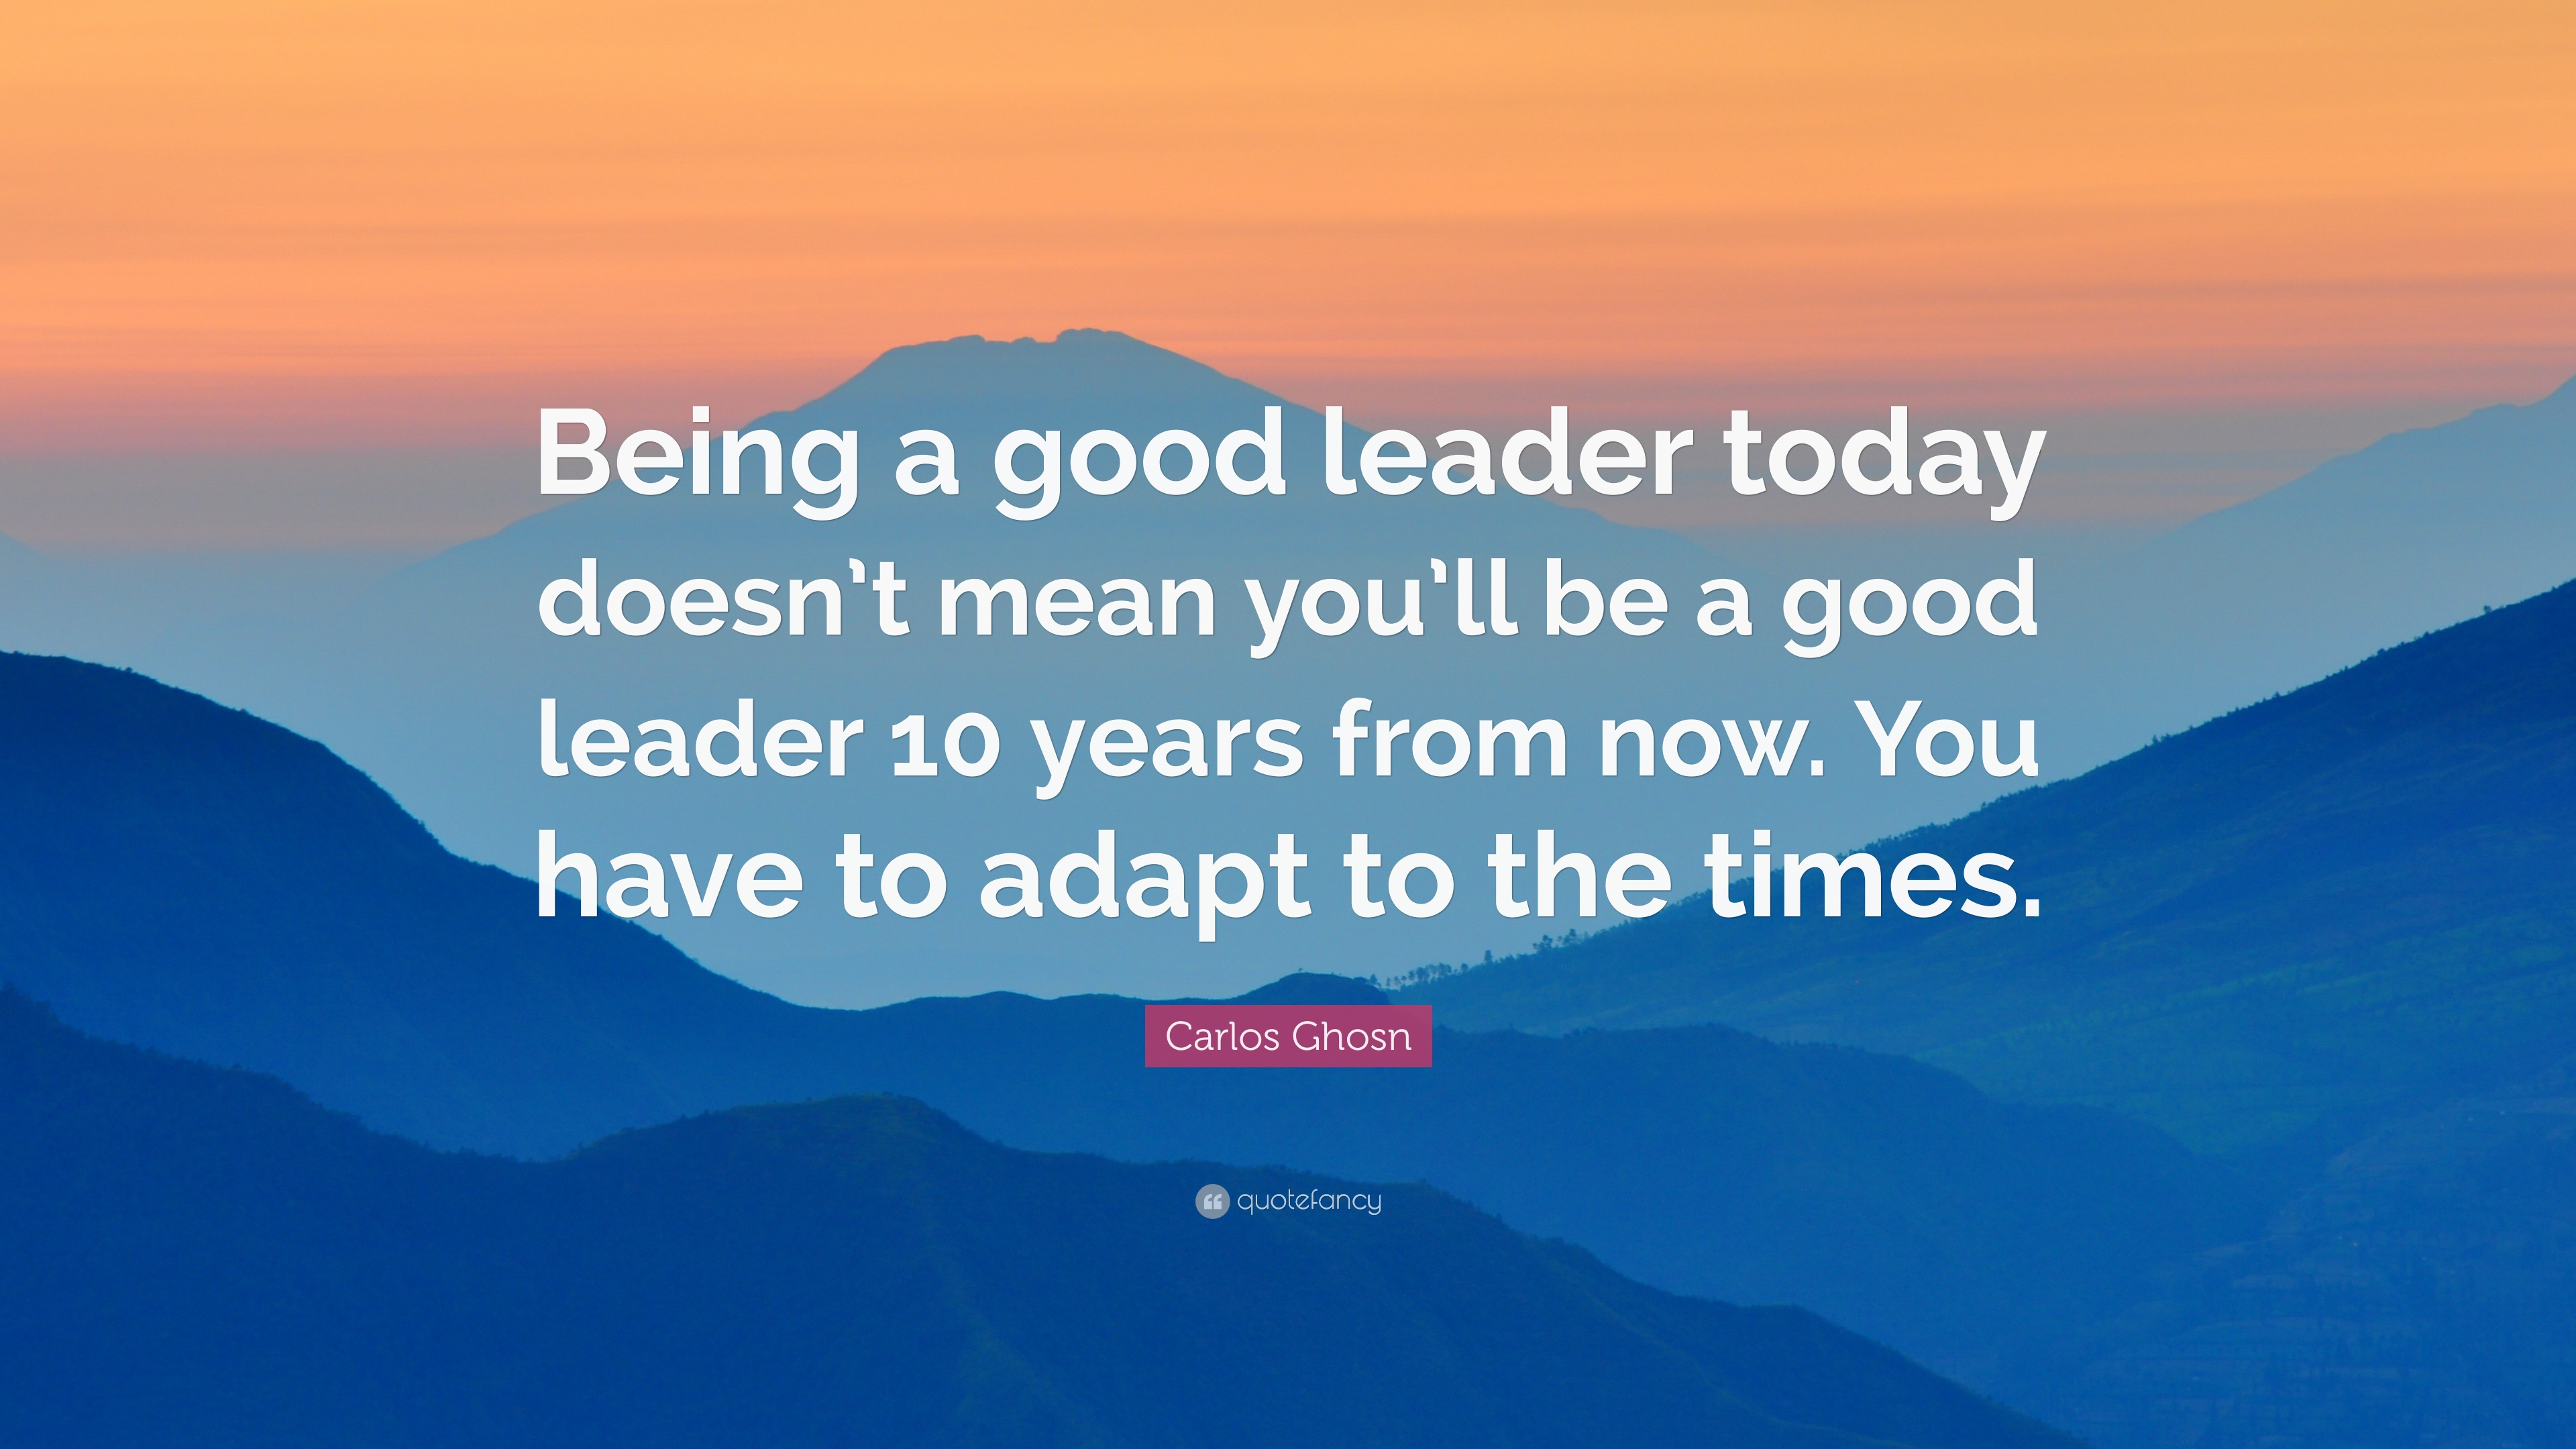 carlos ghosn quote being a good leader today doesn t mean you ll carlos ghosn quote being a good leader today doesn t mean you